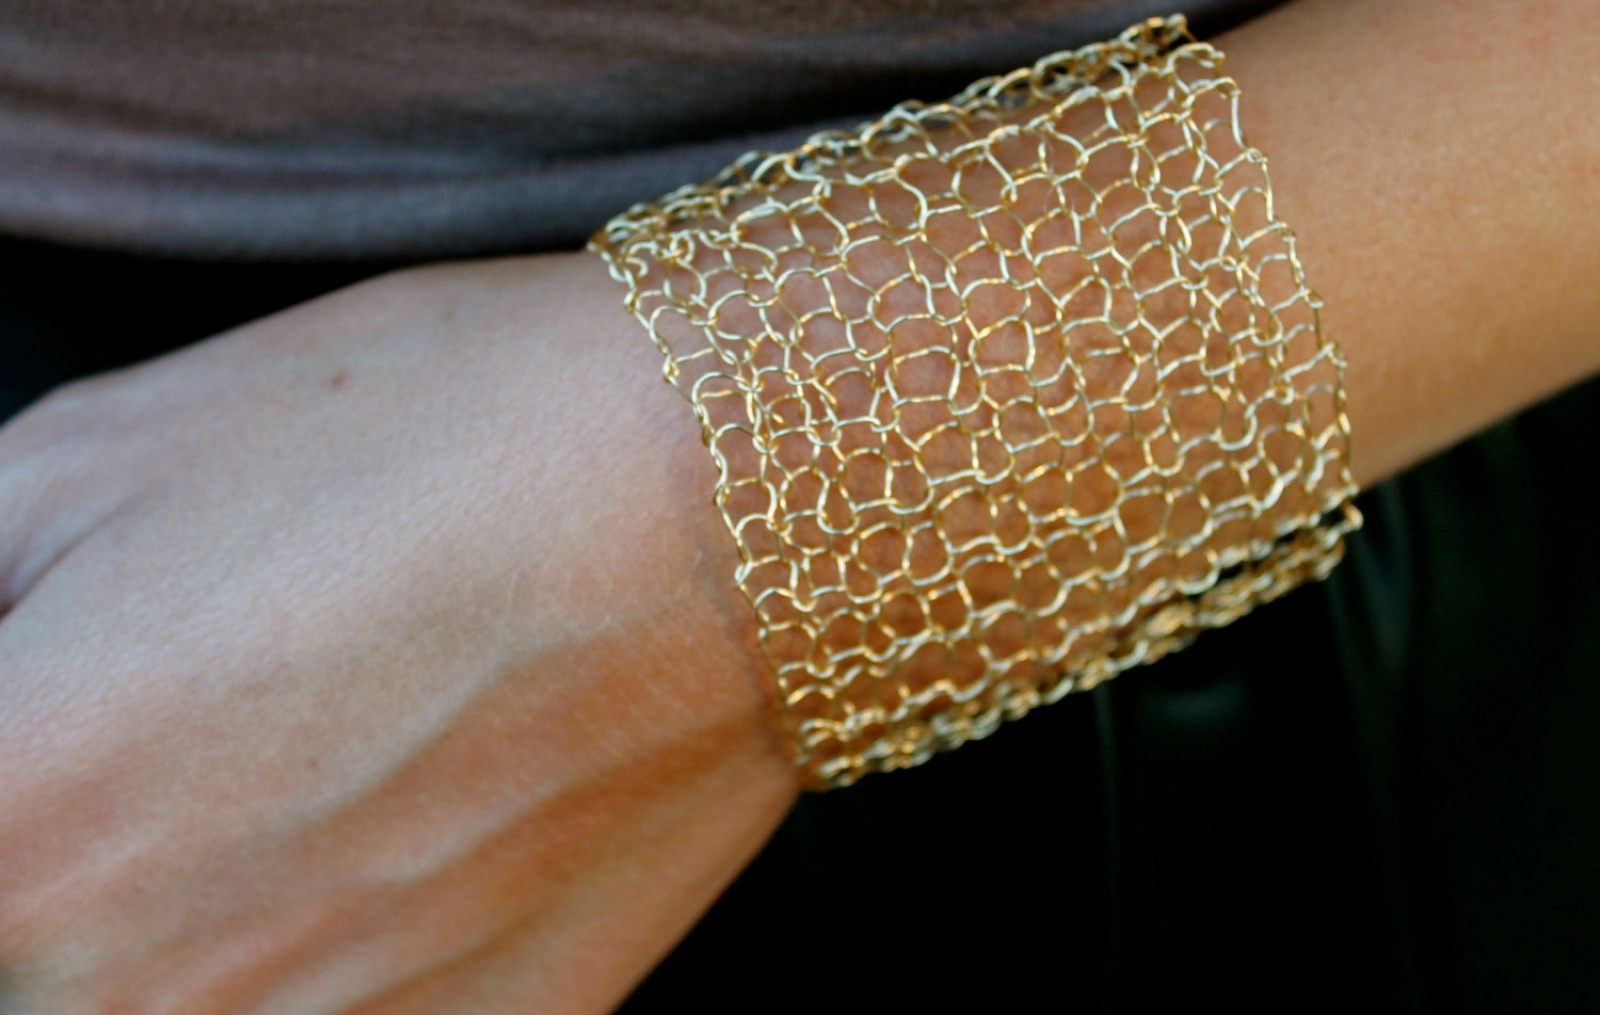 Simple Wide Gold Cuff Bracelet Y Metallic Wire Mesh Hand Knit Lace Minimal Chic Jewelry